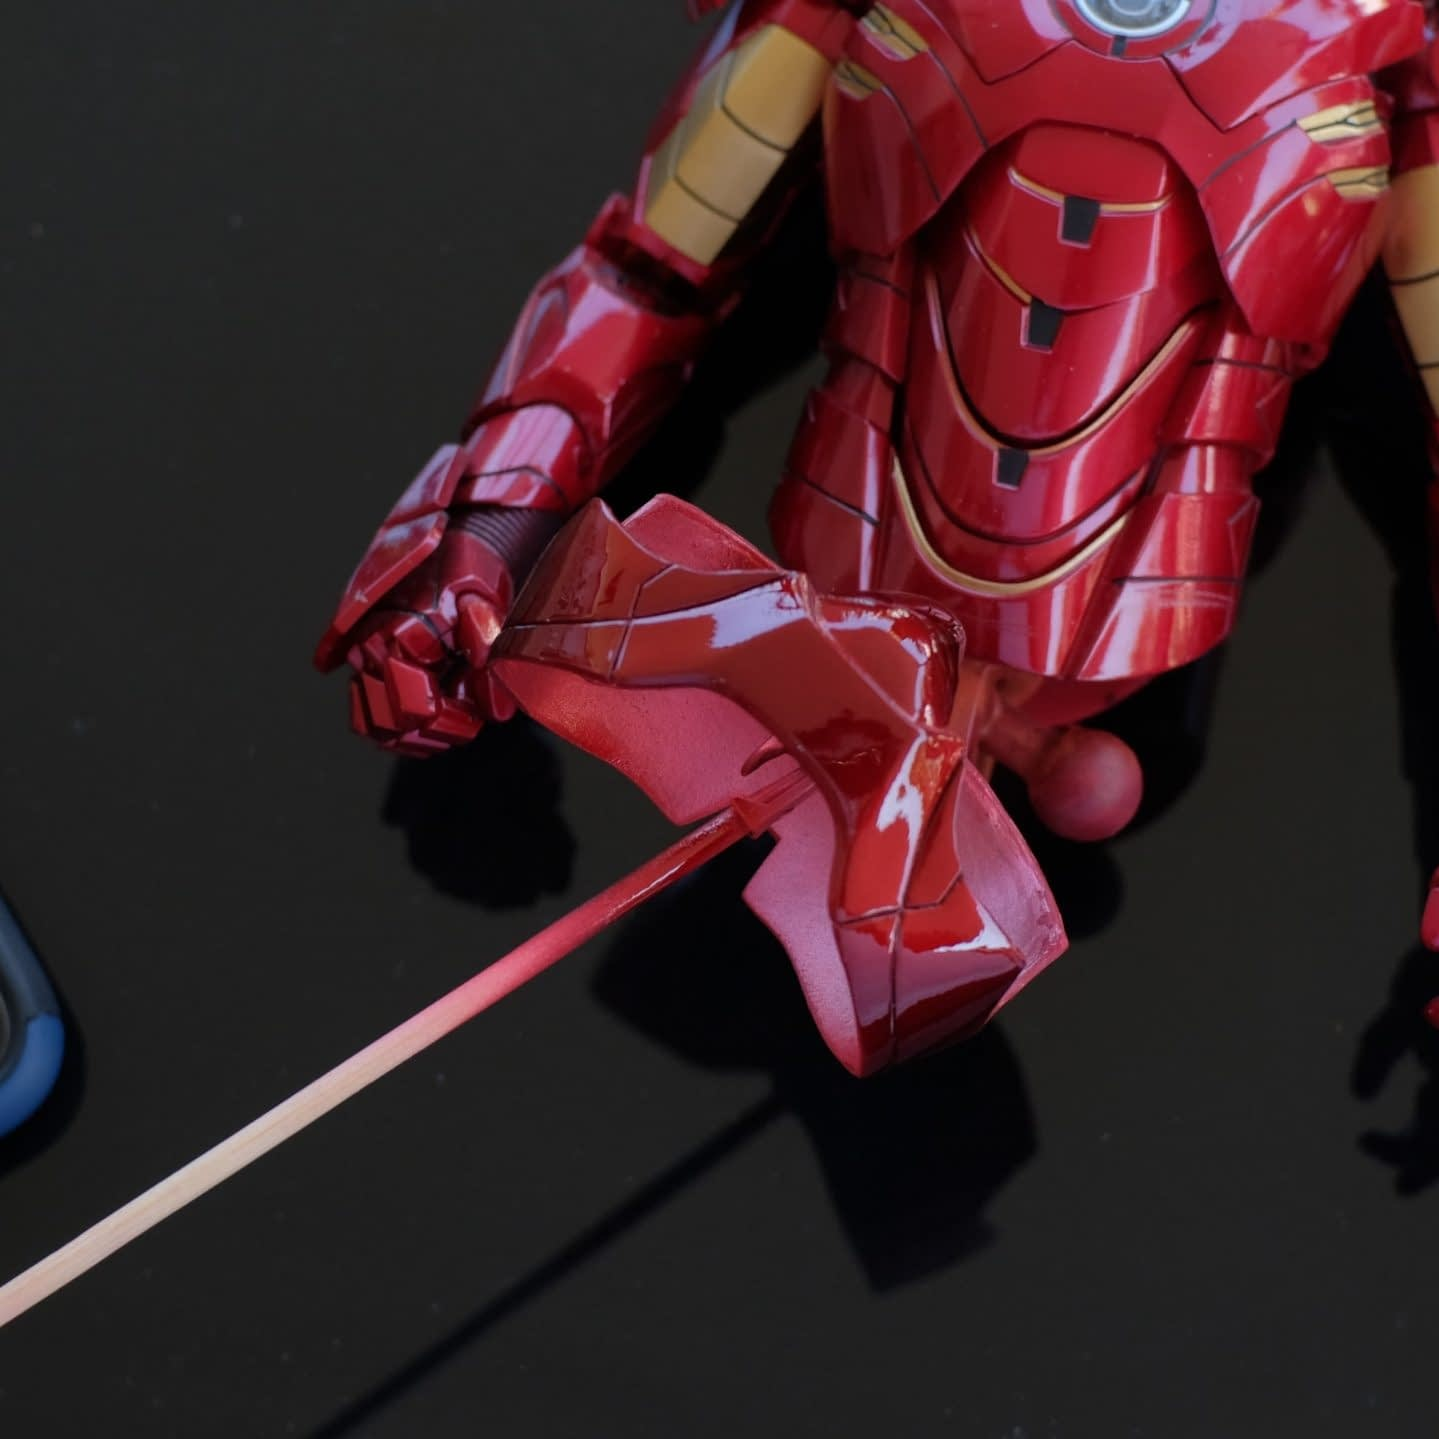 How to fix HT's Iron Man pink panty issue 25